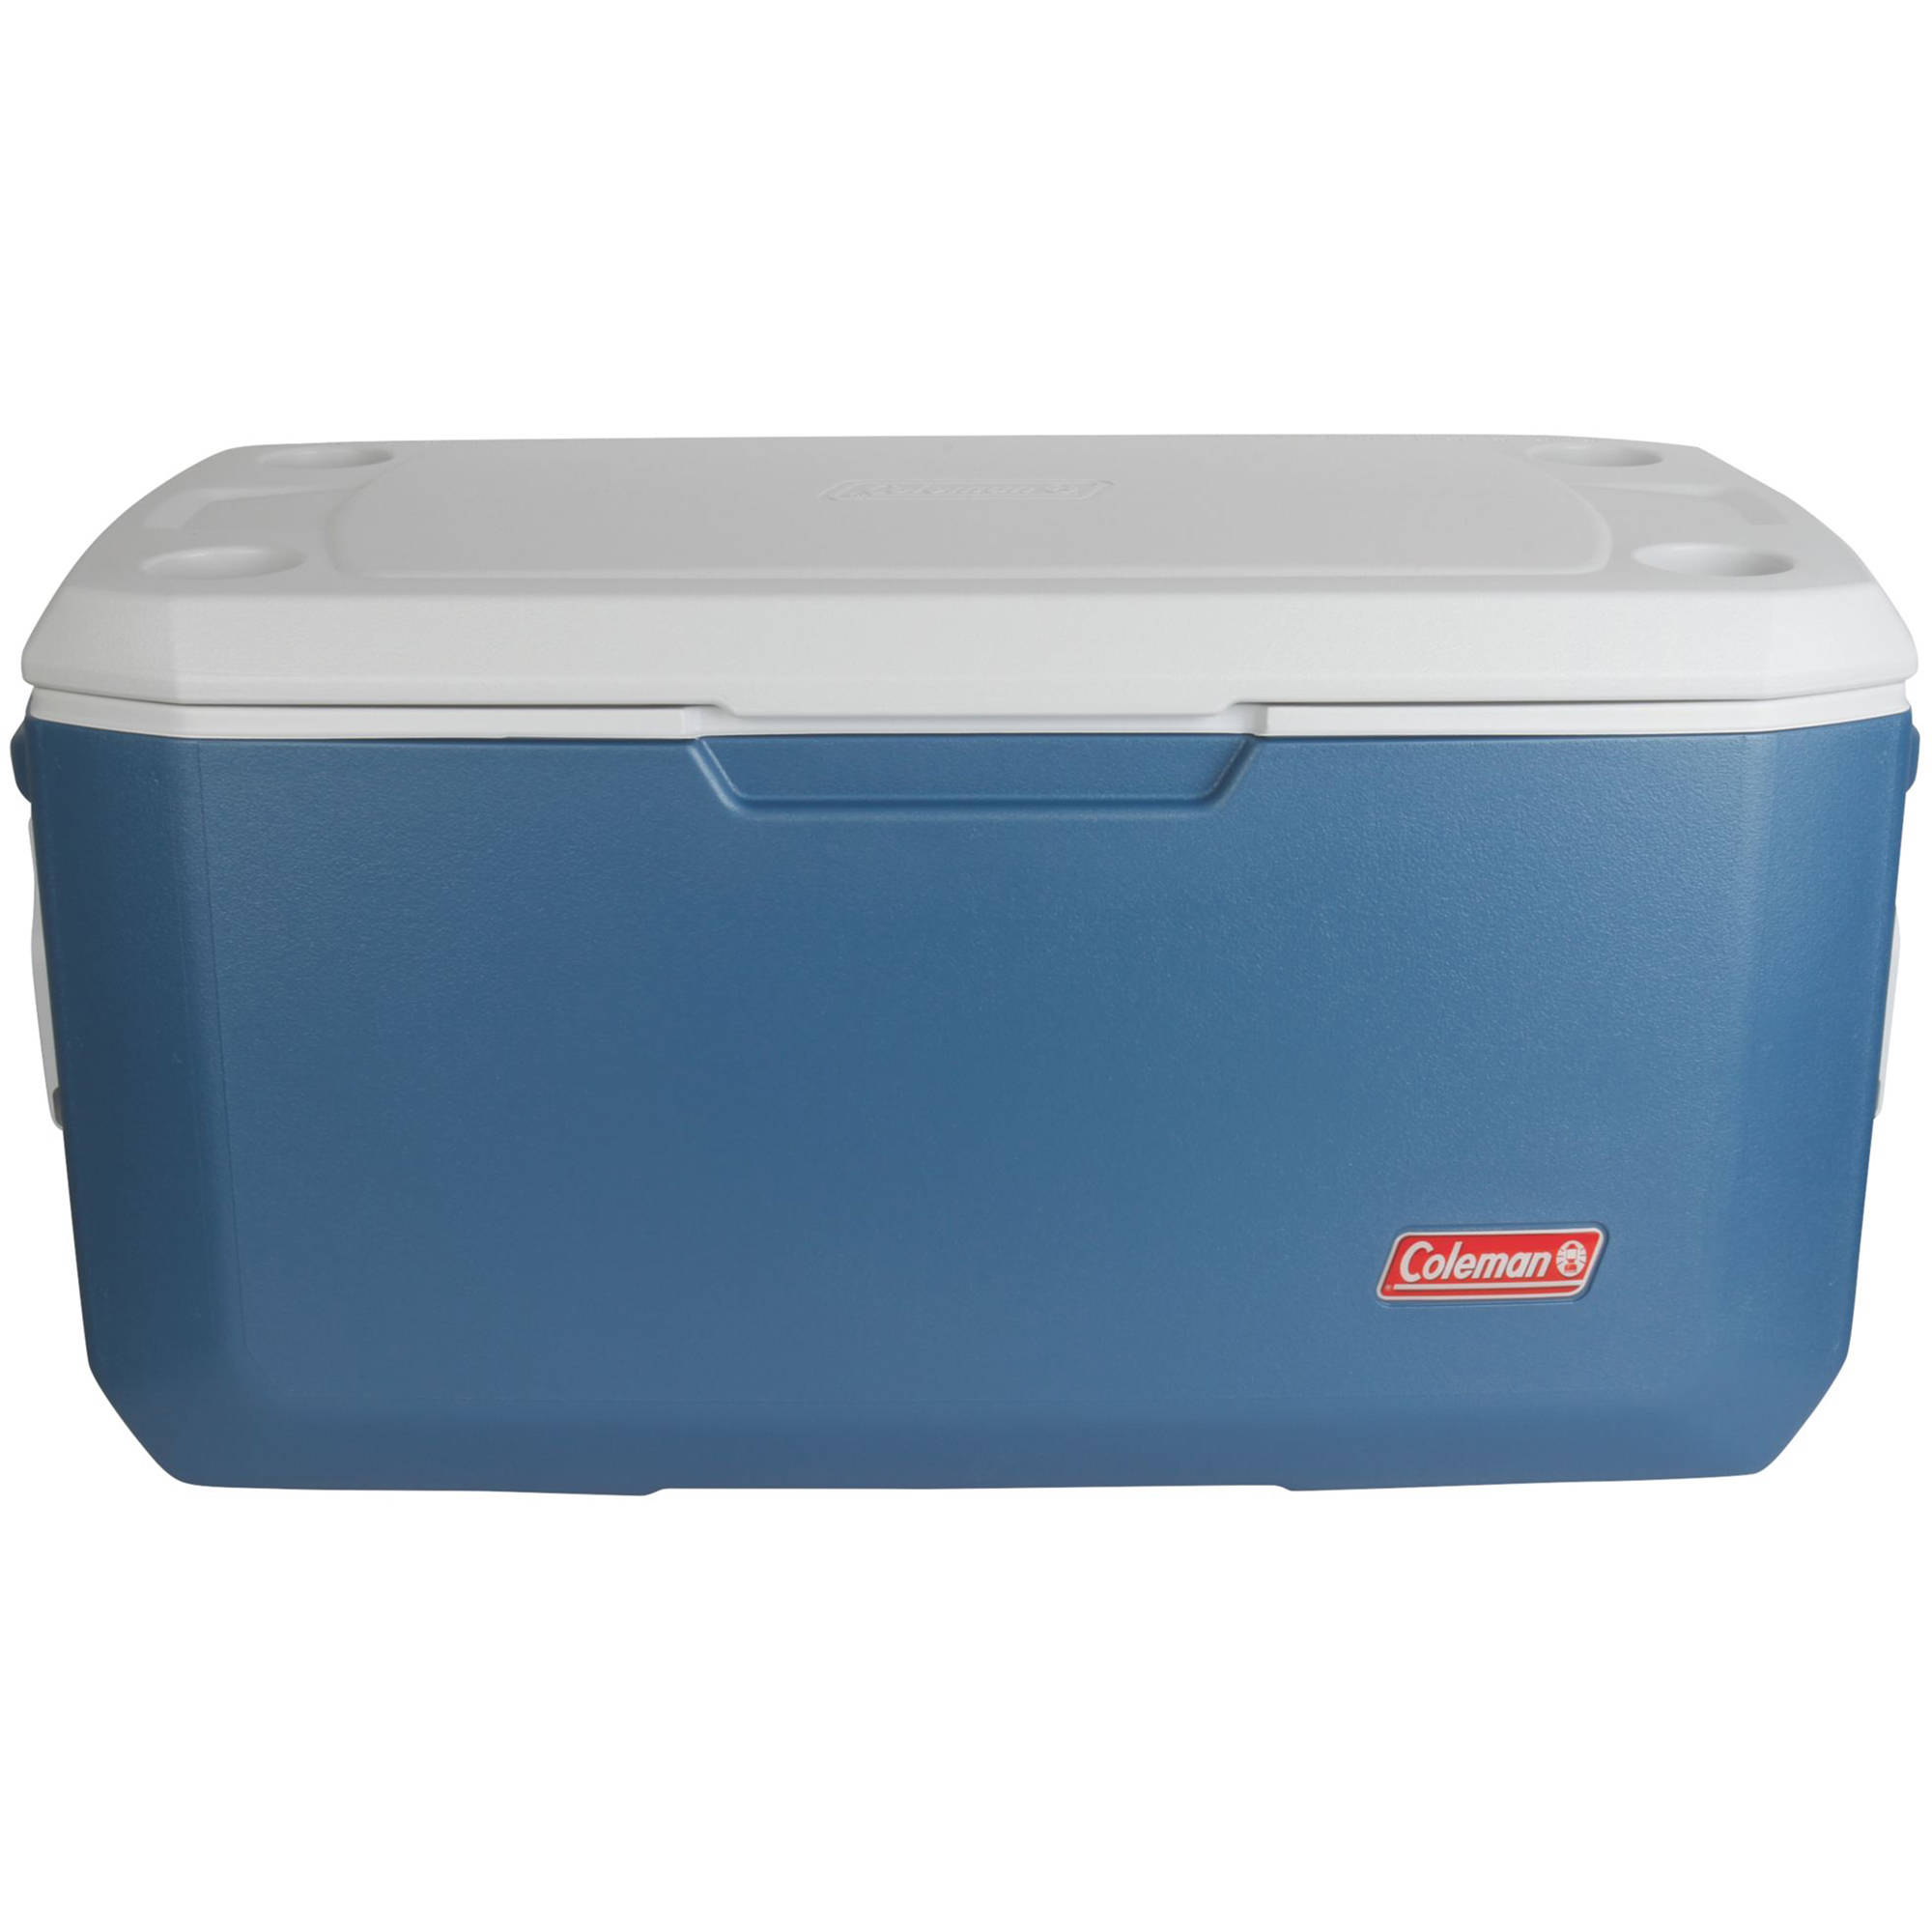 Coleman 120 Quart Xtreme 5 Cooler (Blue/White)